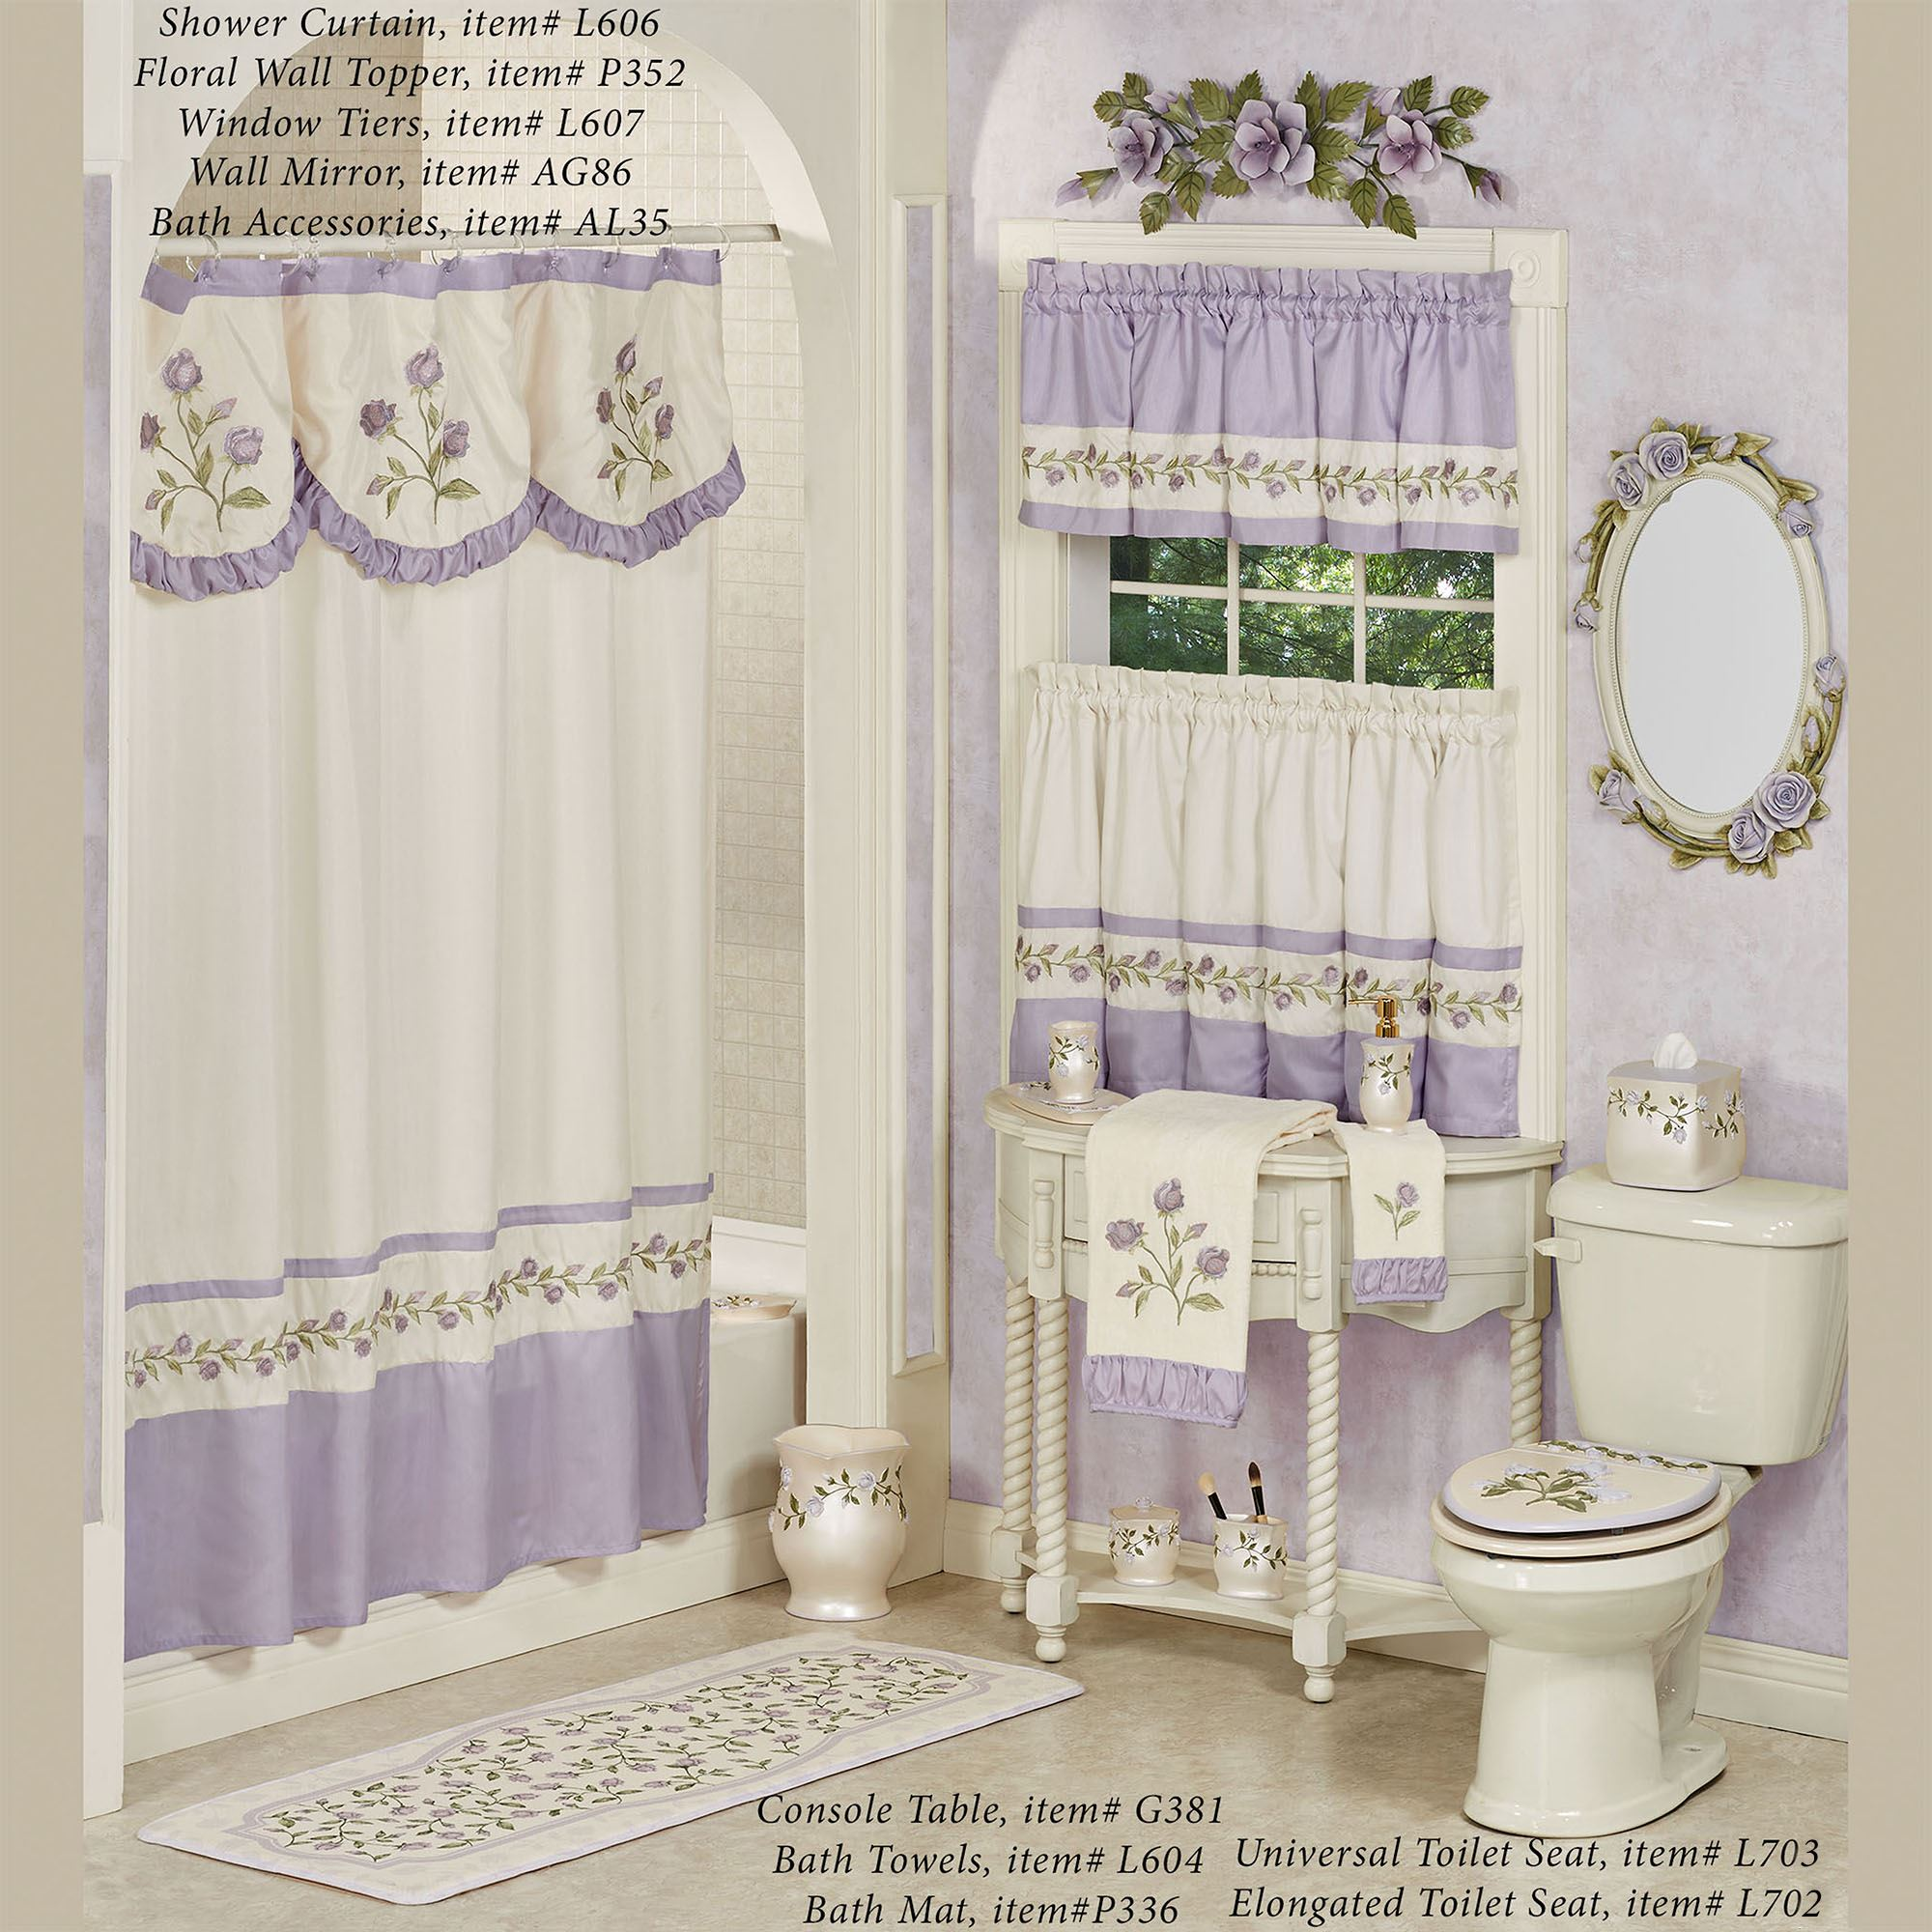 Rose Embroidered Towels: Lavender Rose Embroidered Floral Bath Towel Set